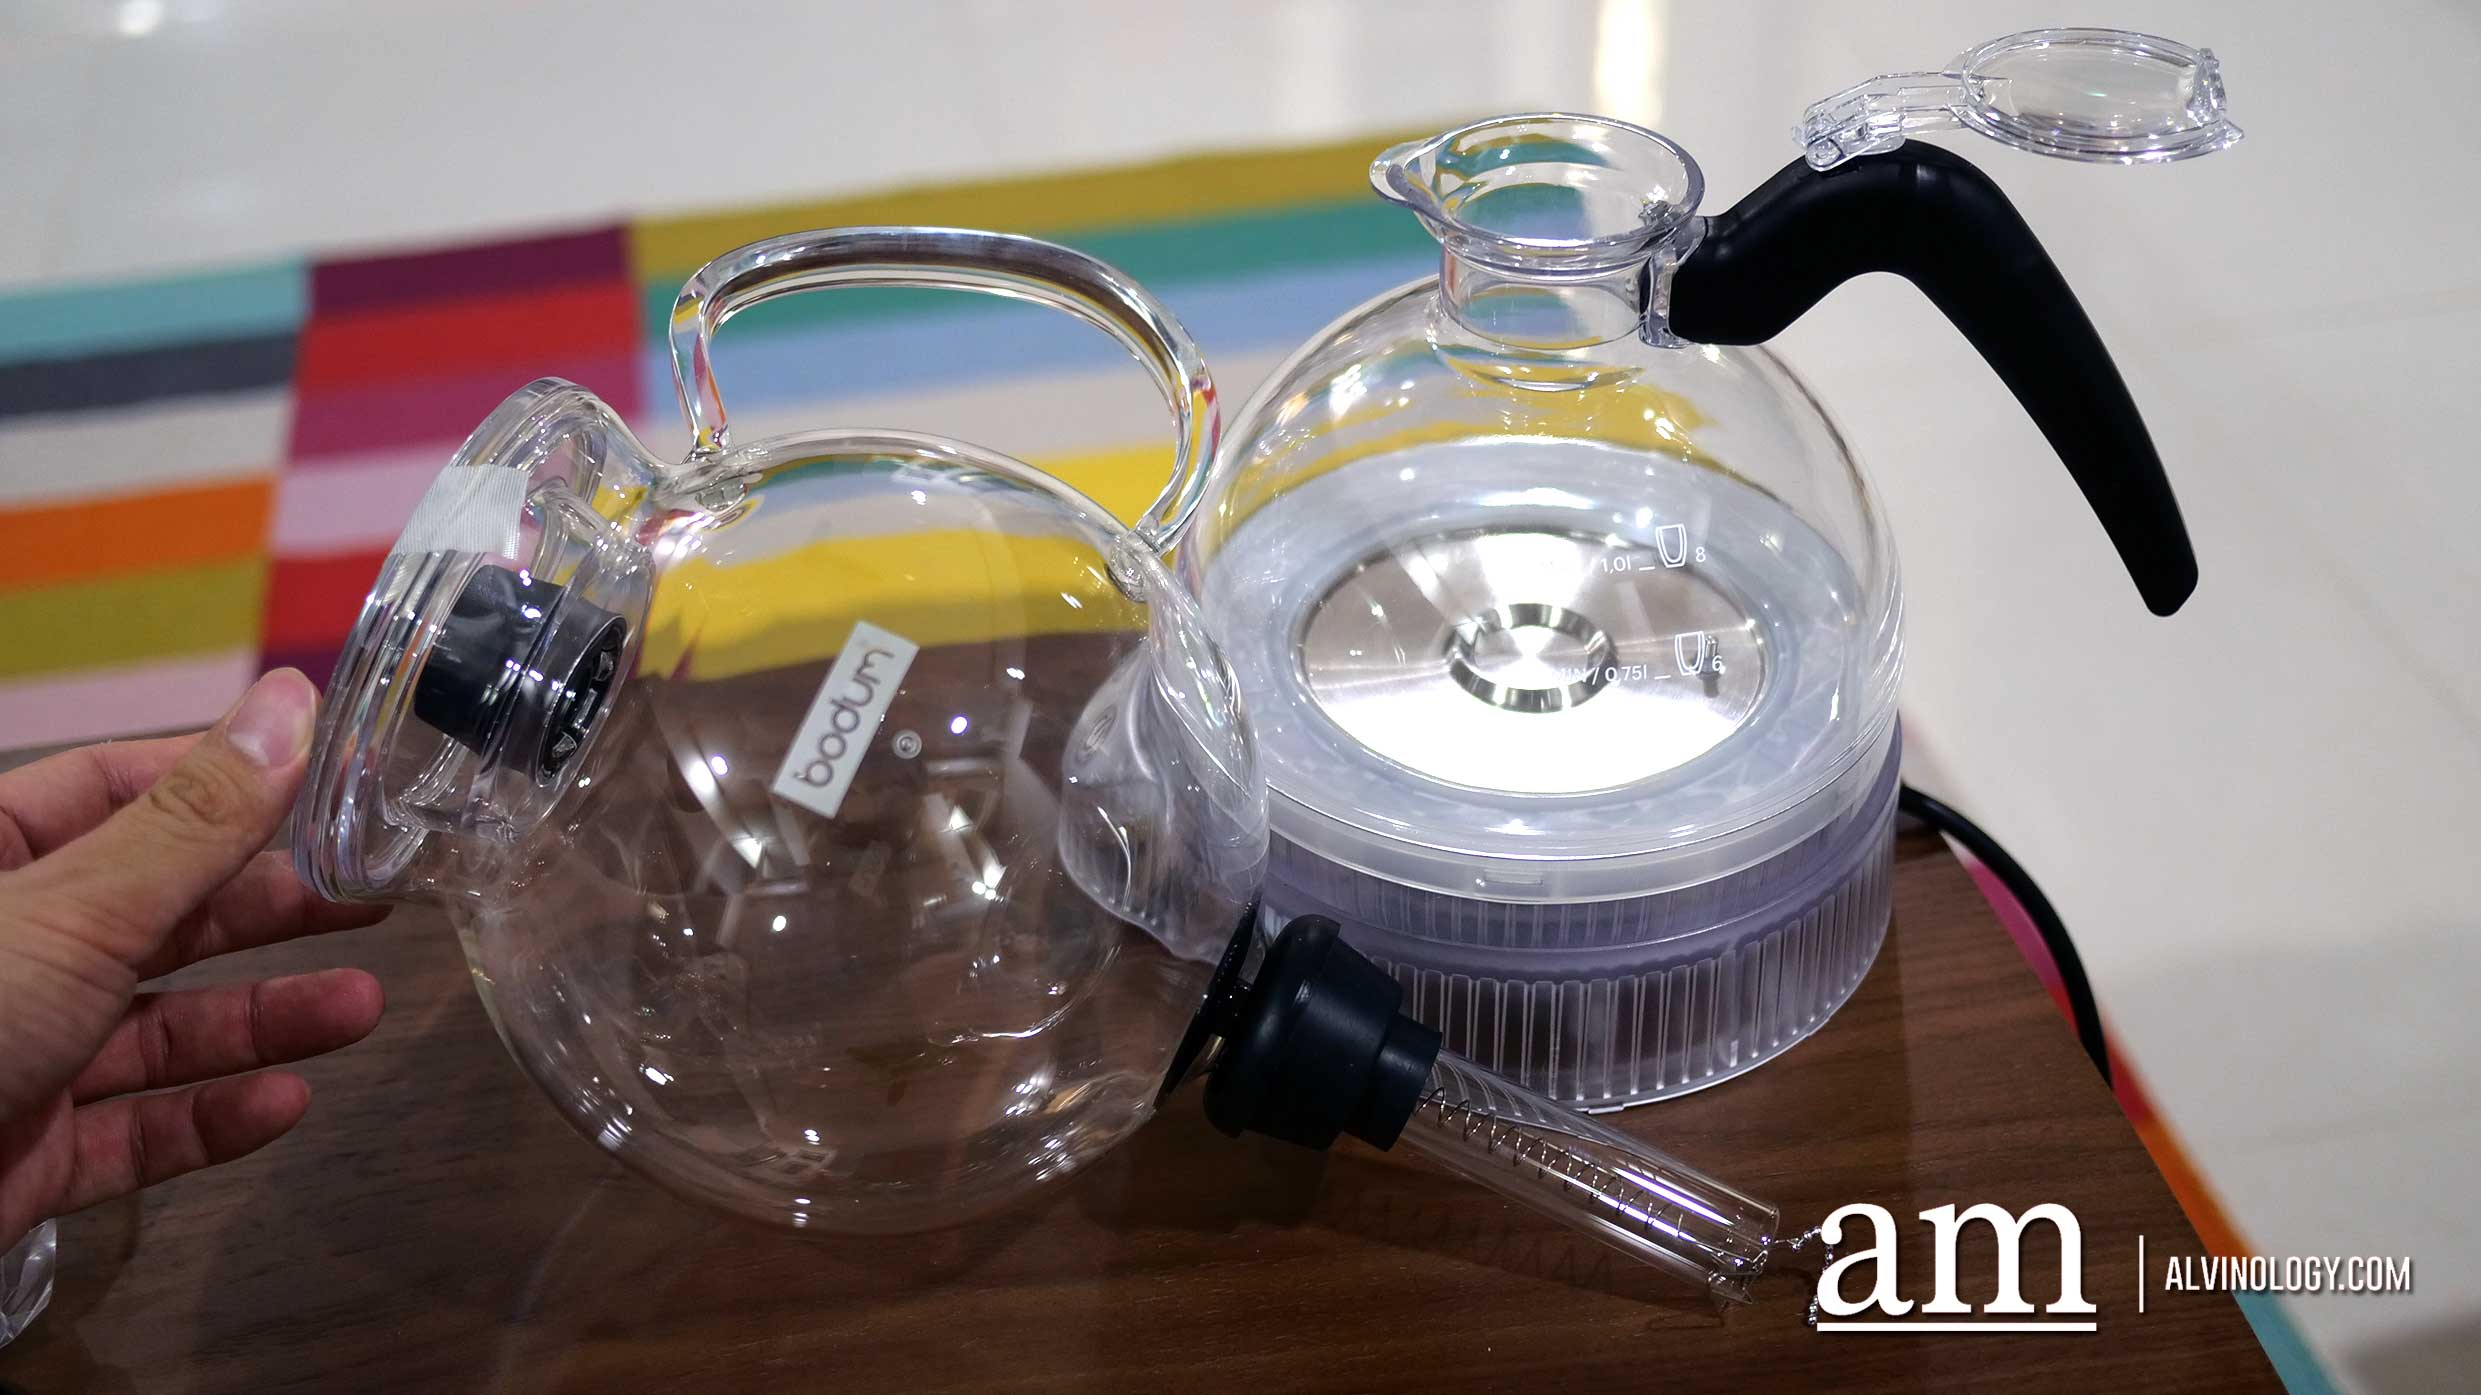 [GIVEAWAY] DIY your own artisanal coffee in your home kitchen with BODUM - Alvinology